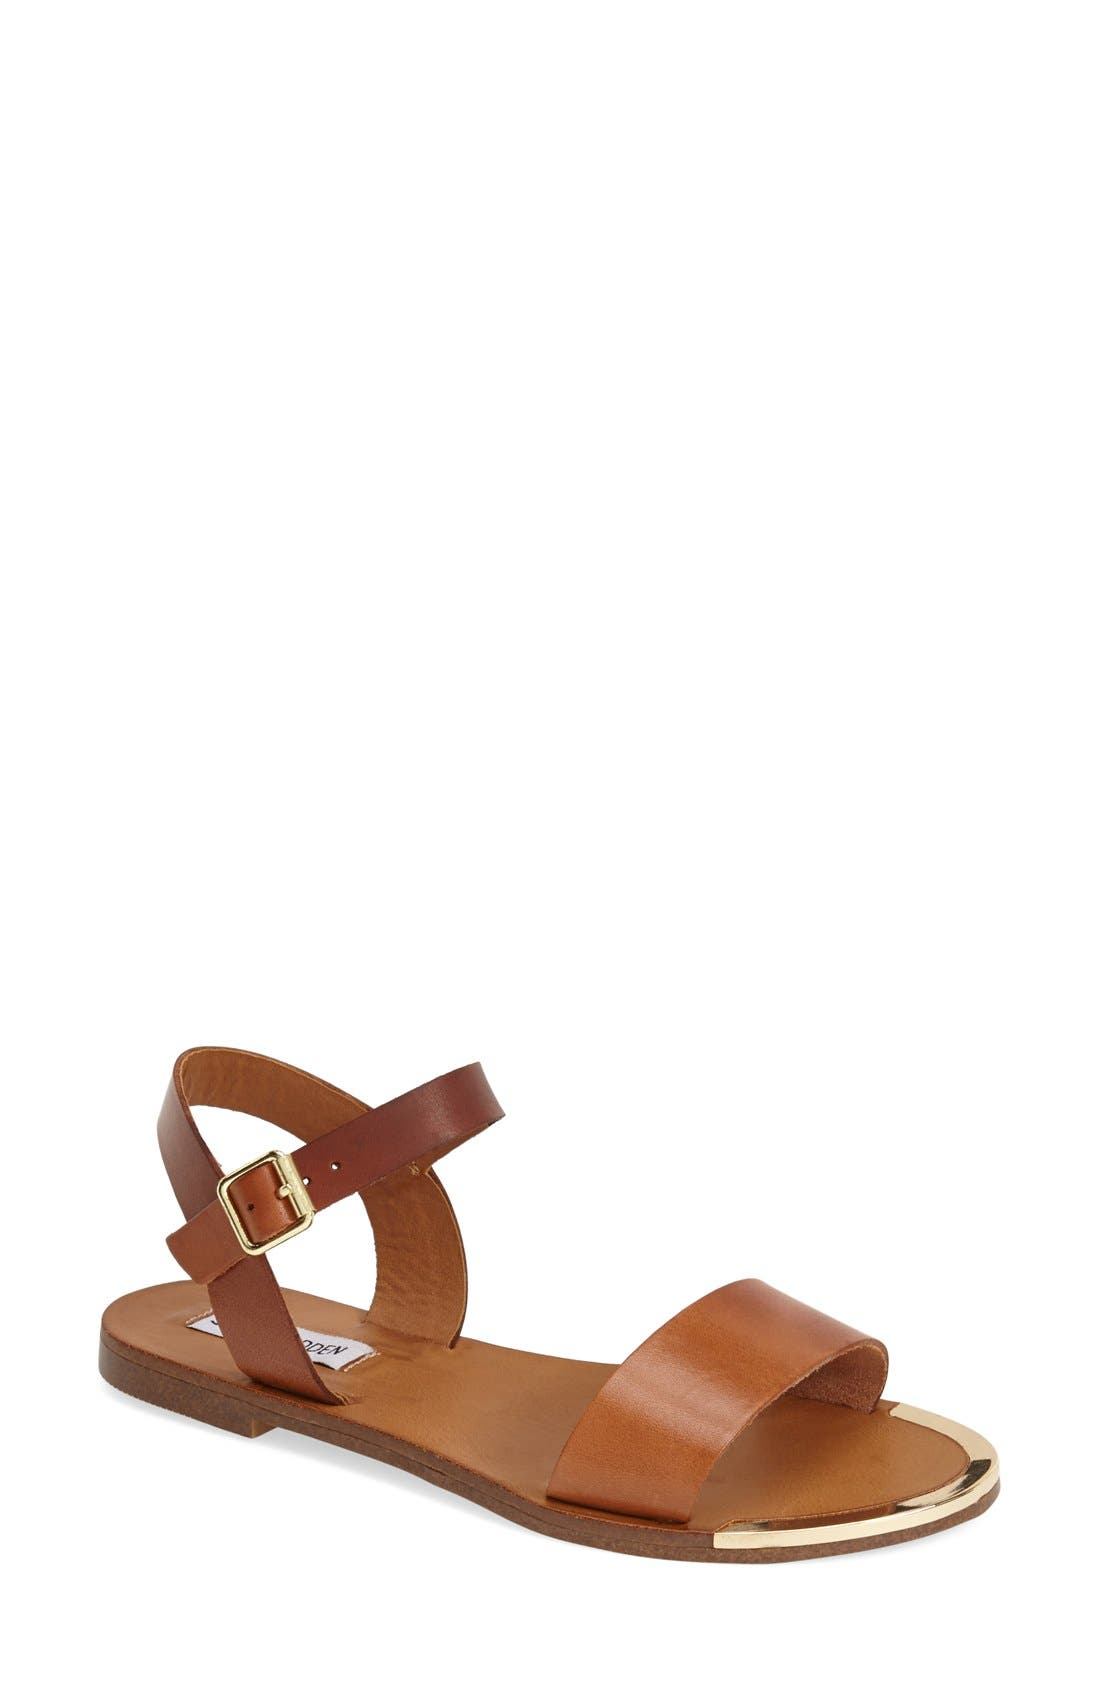 'Rillie' Two Strap Sandal,                             Main thumbnail 1, color,                             Tan Leather